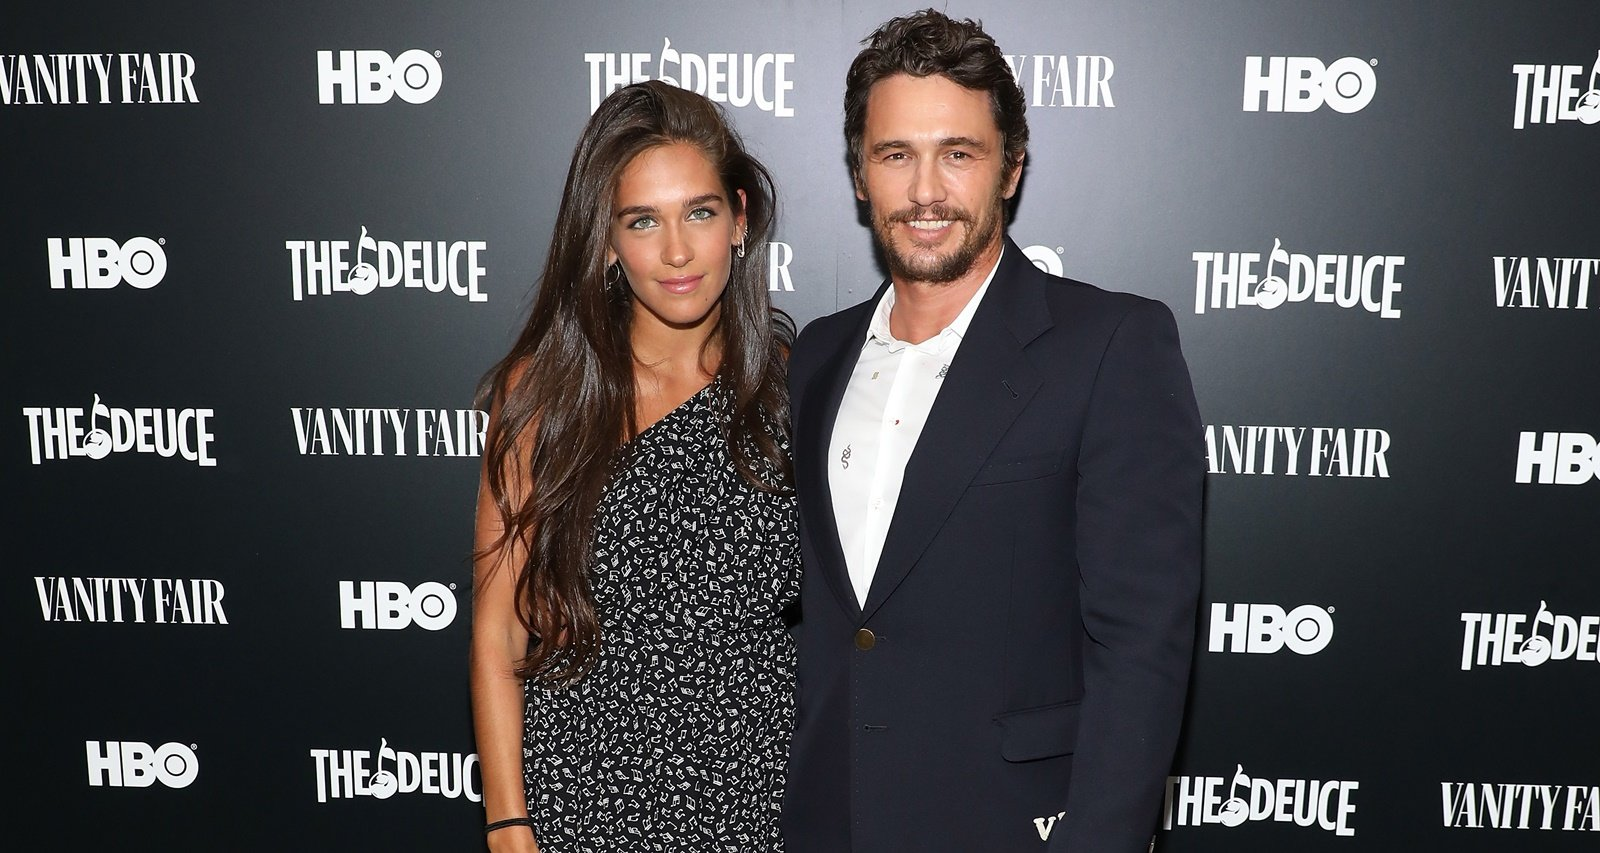 Isabel Pakzad Wiki, Age, Family, Career and Facts About James Franco's Girlfriend